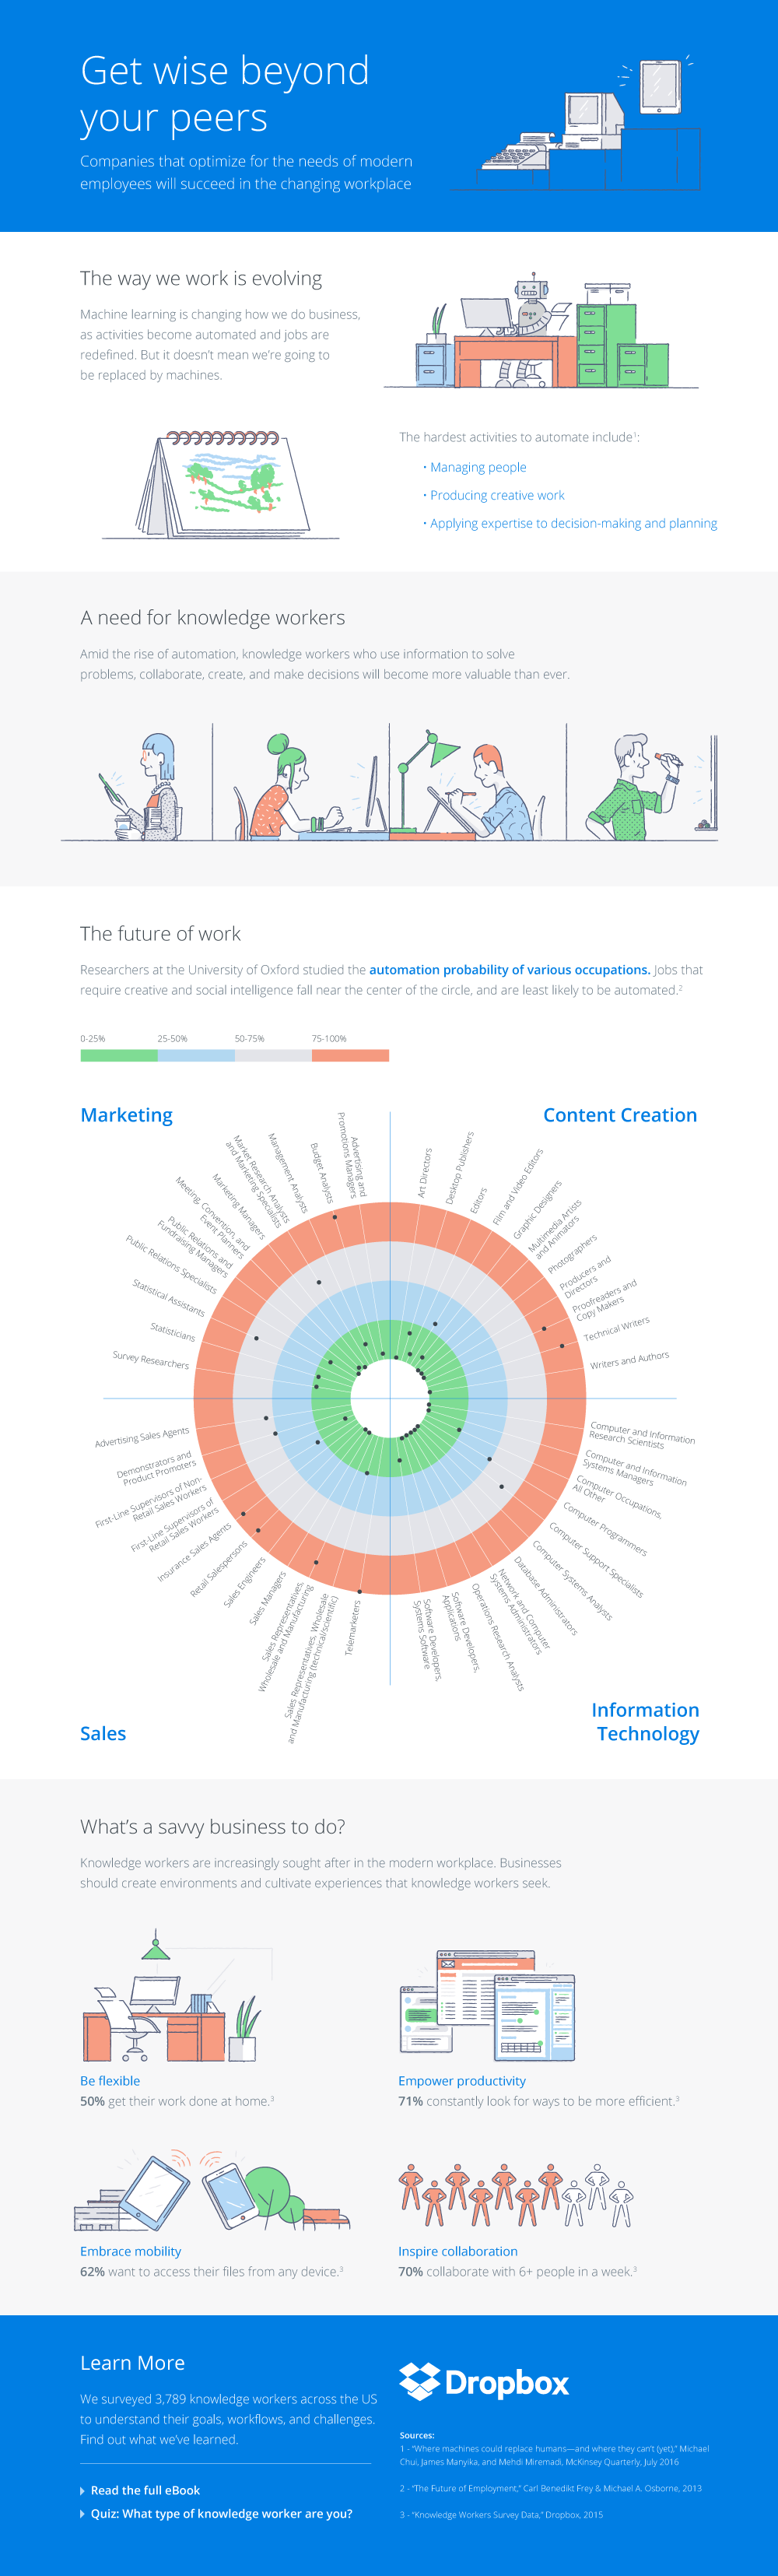 knowledge workers dropbox business